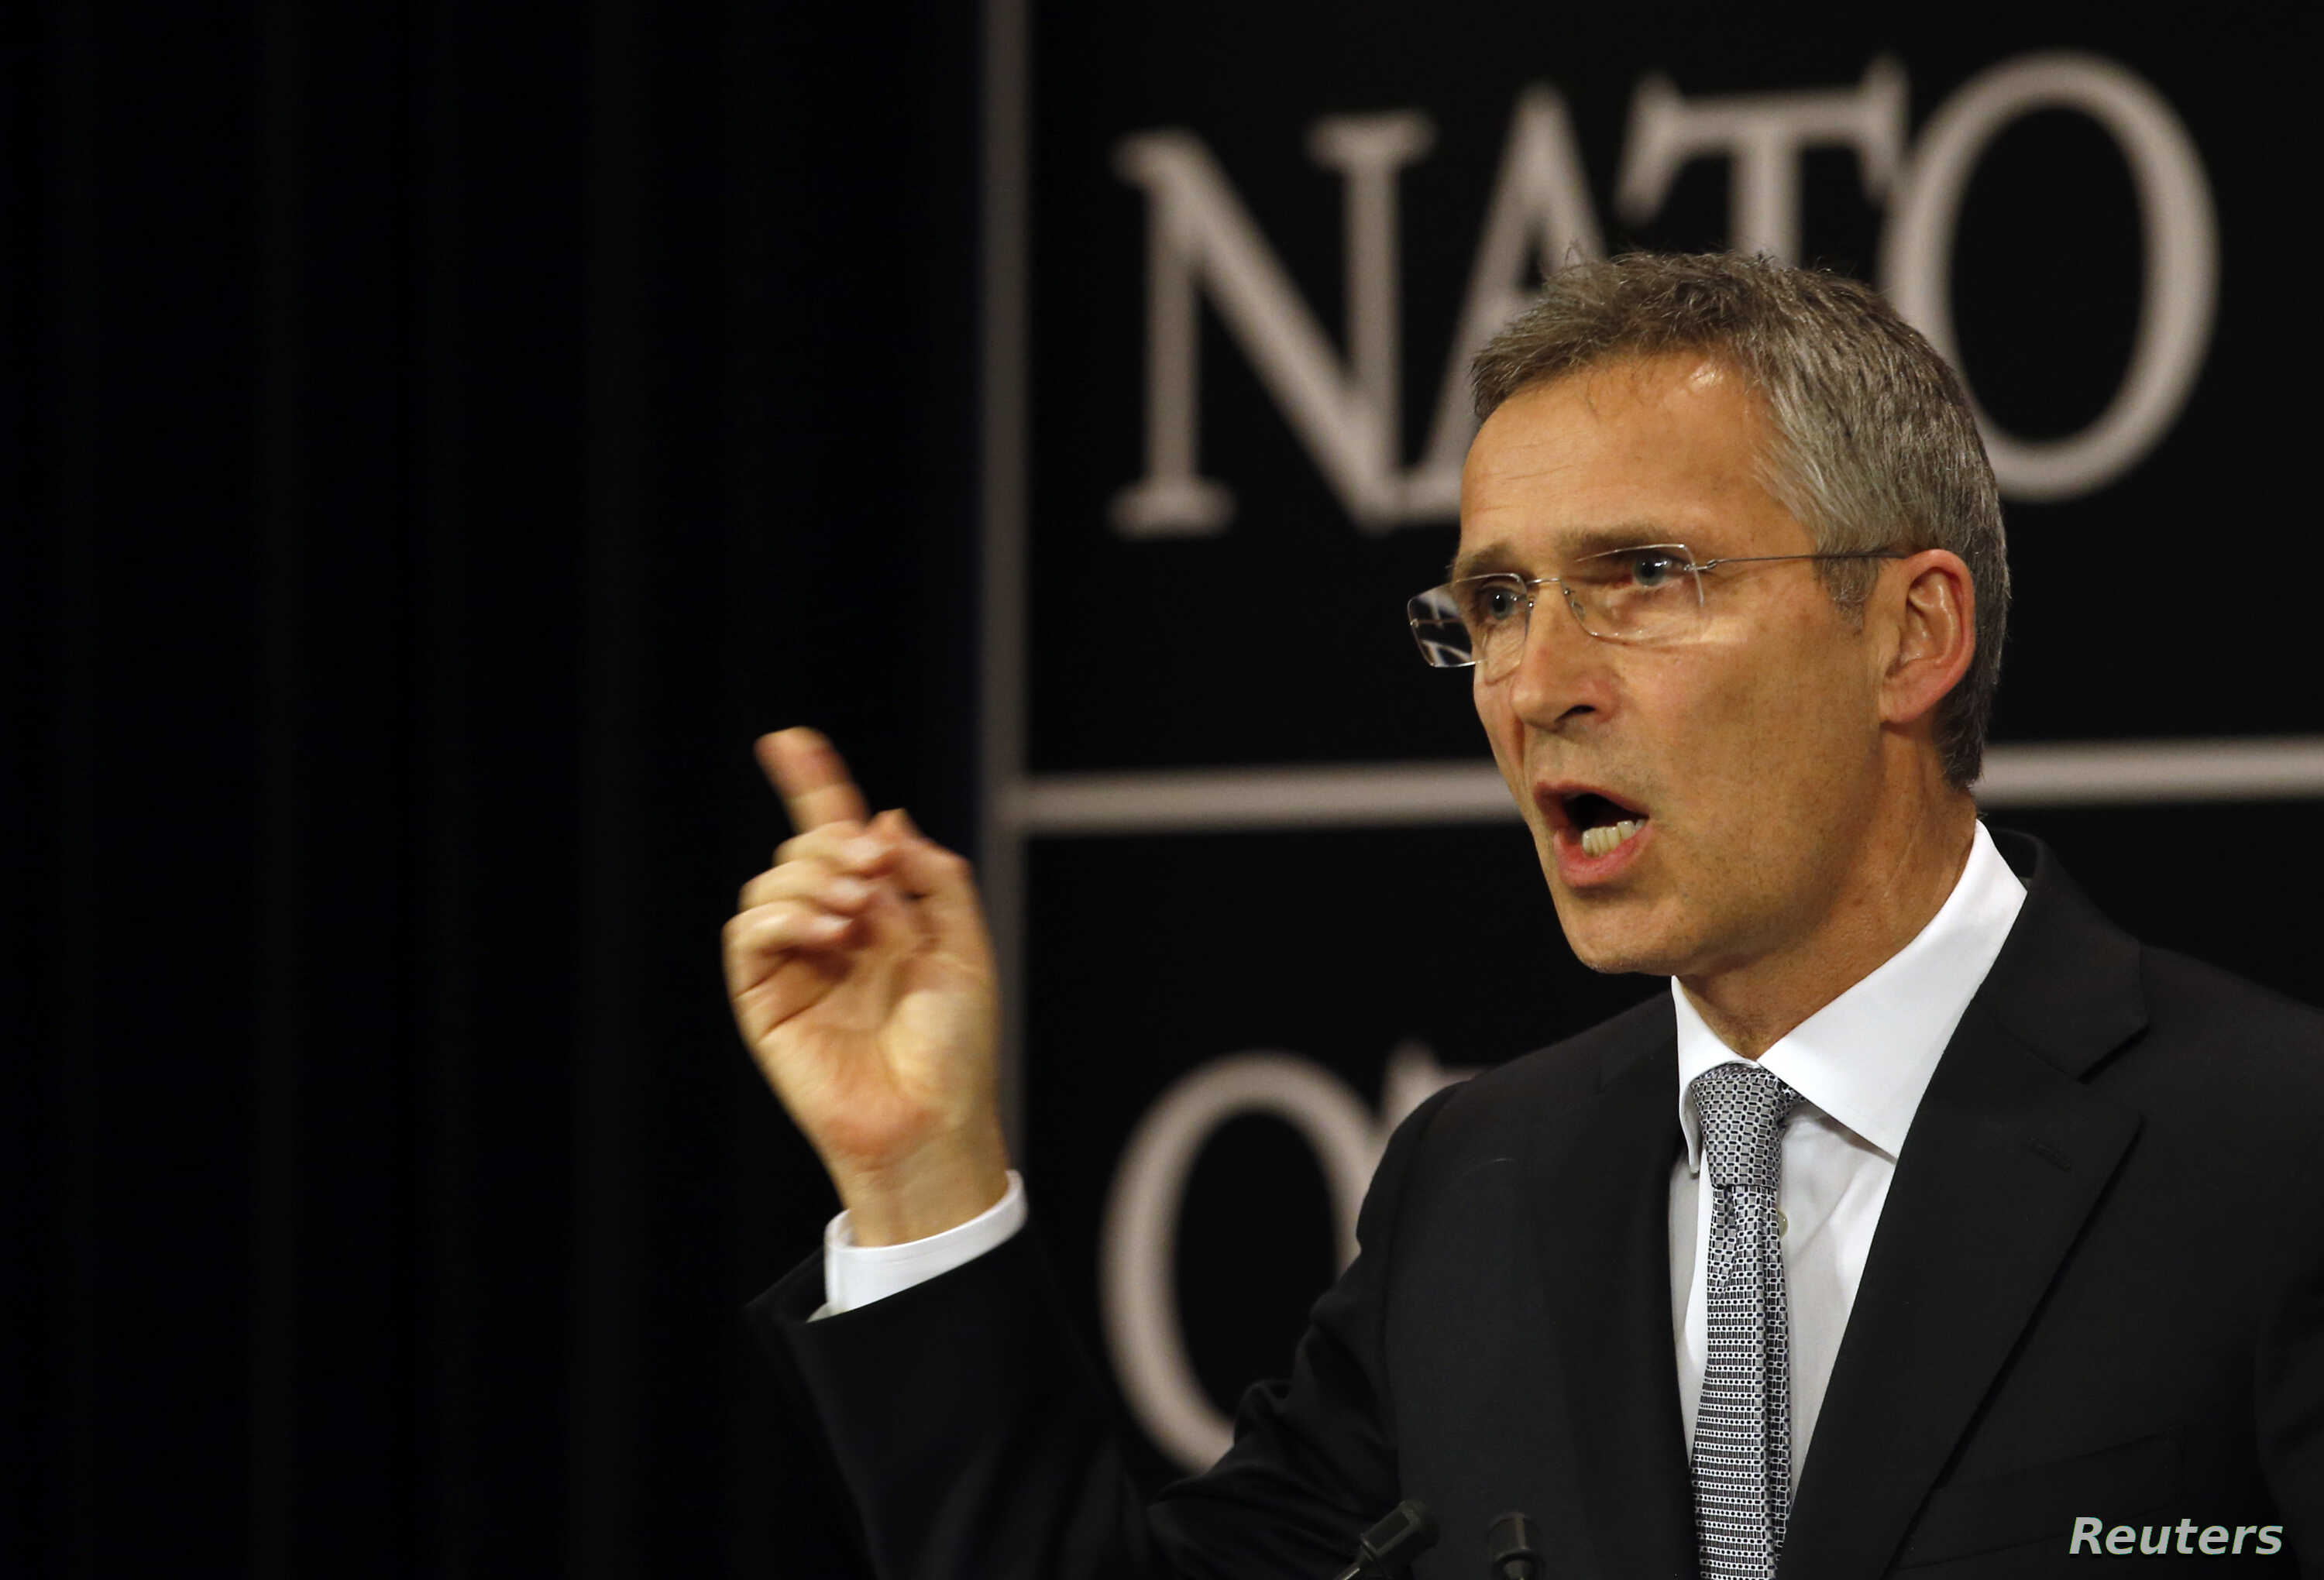 NATO Secretary General Jens Stoltenberg, shown at a news conference in Brussels, Belgium, July 13, 2016, said NATO and Russia remain at loggerheads over Ukraine but will consider a proposal to reduce the risk of an accidental military confrontation i